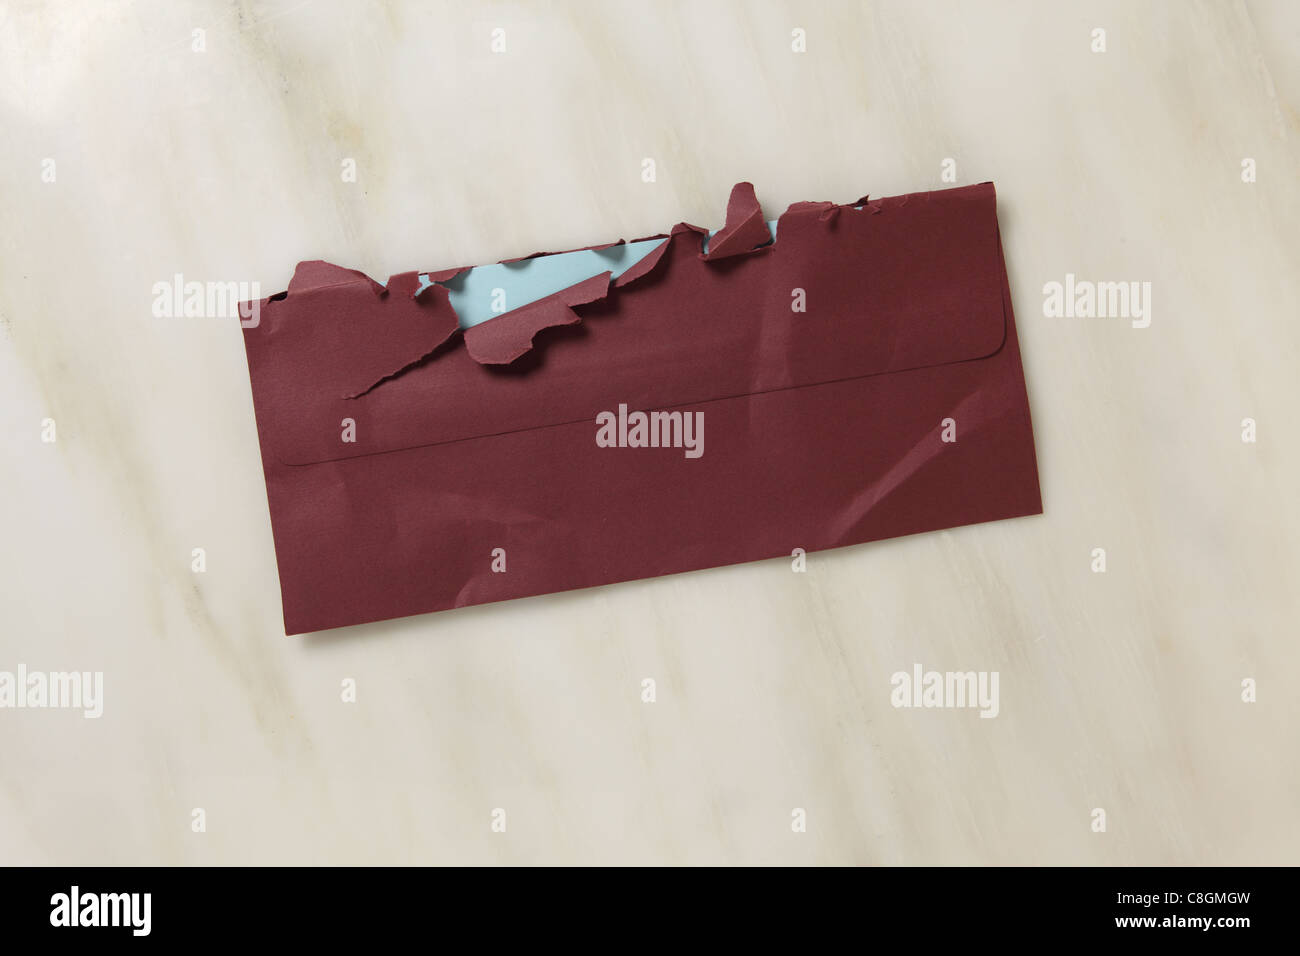 A used and slightly torn open burgundy postal envelope on a marble surface - Stock Image